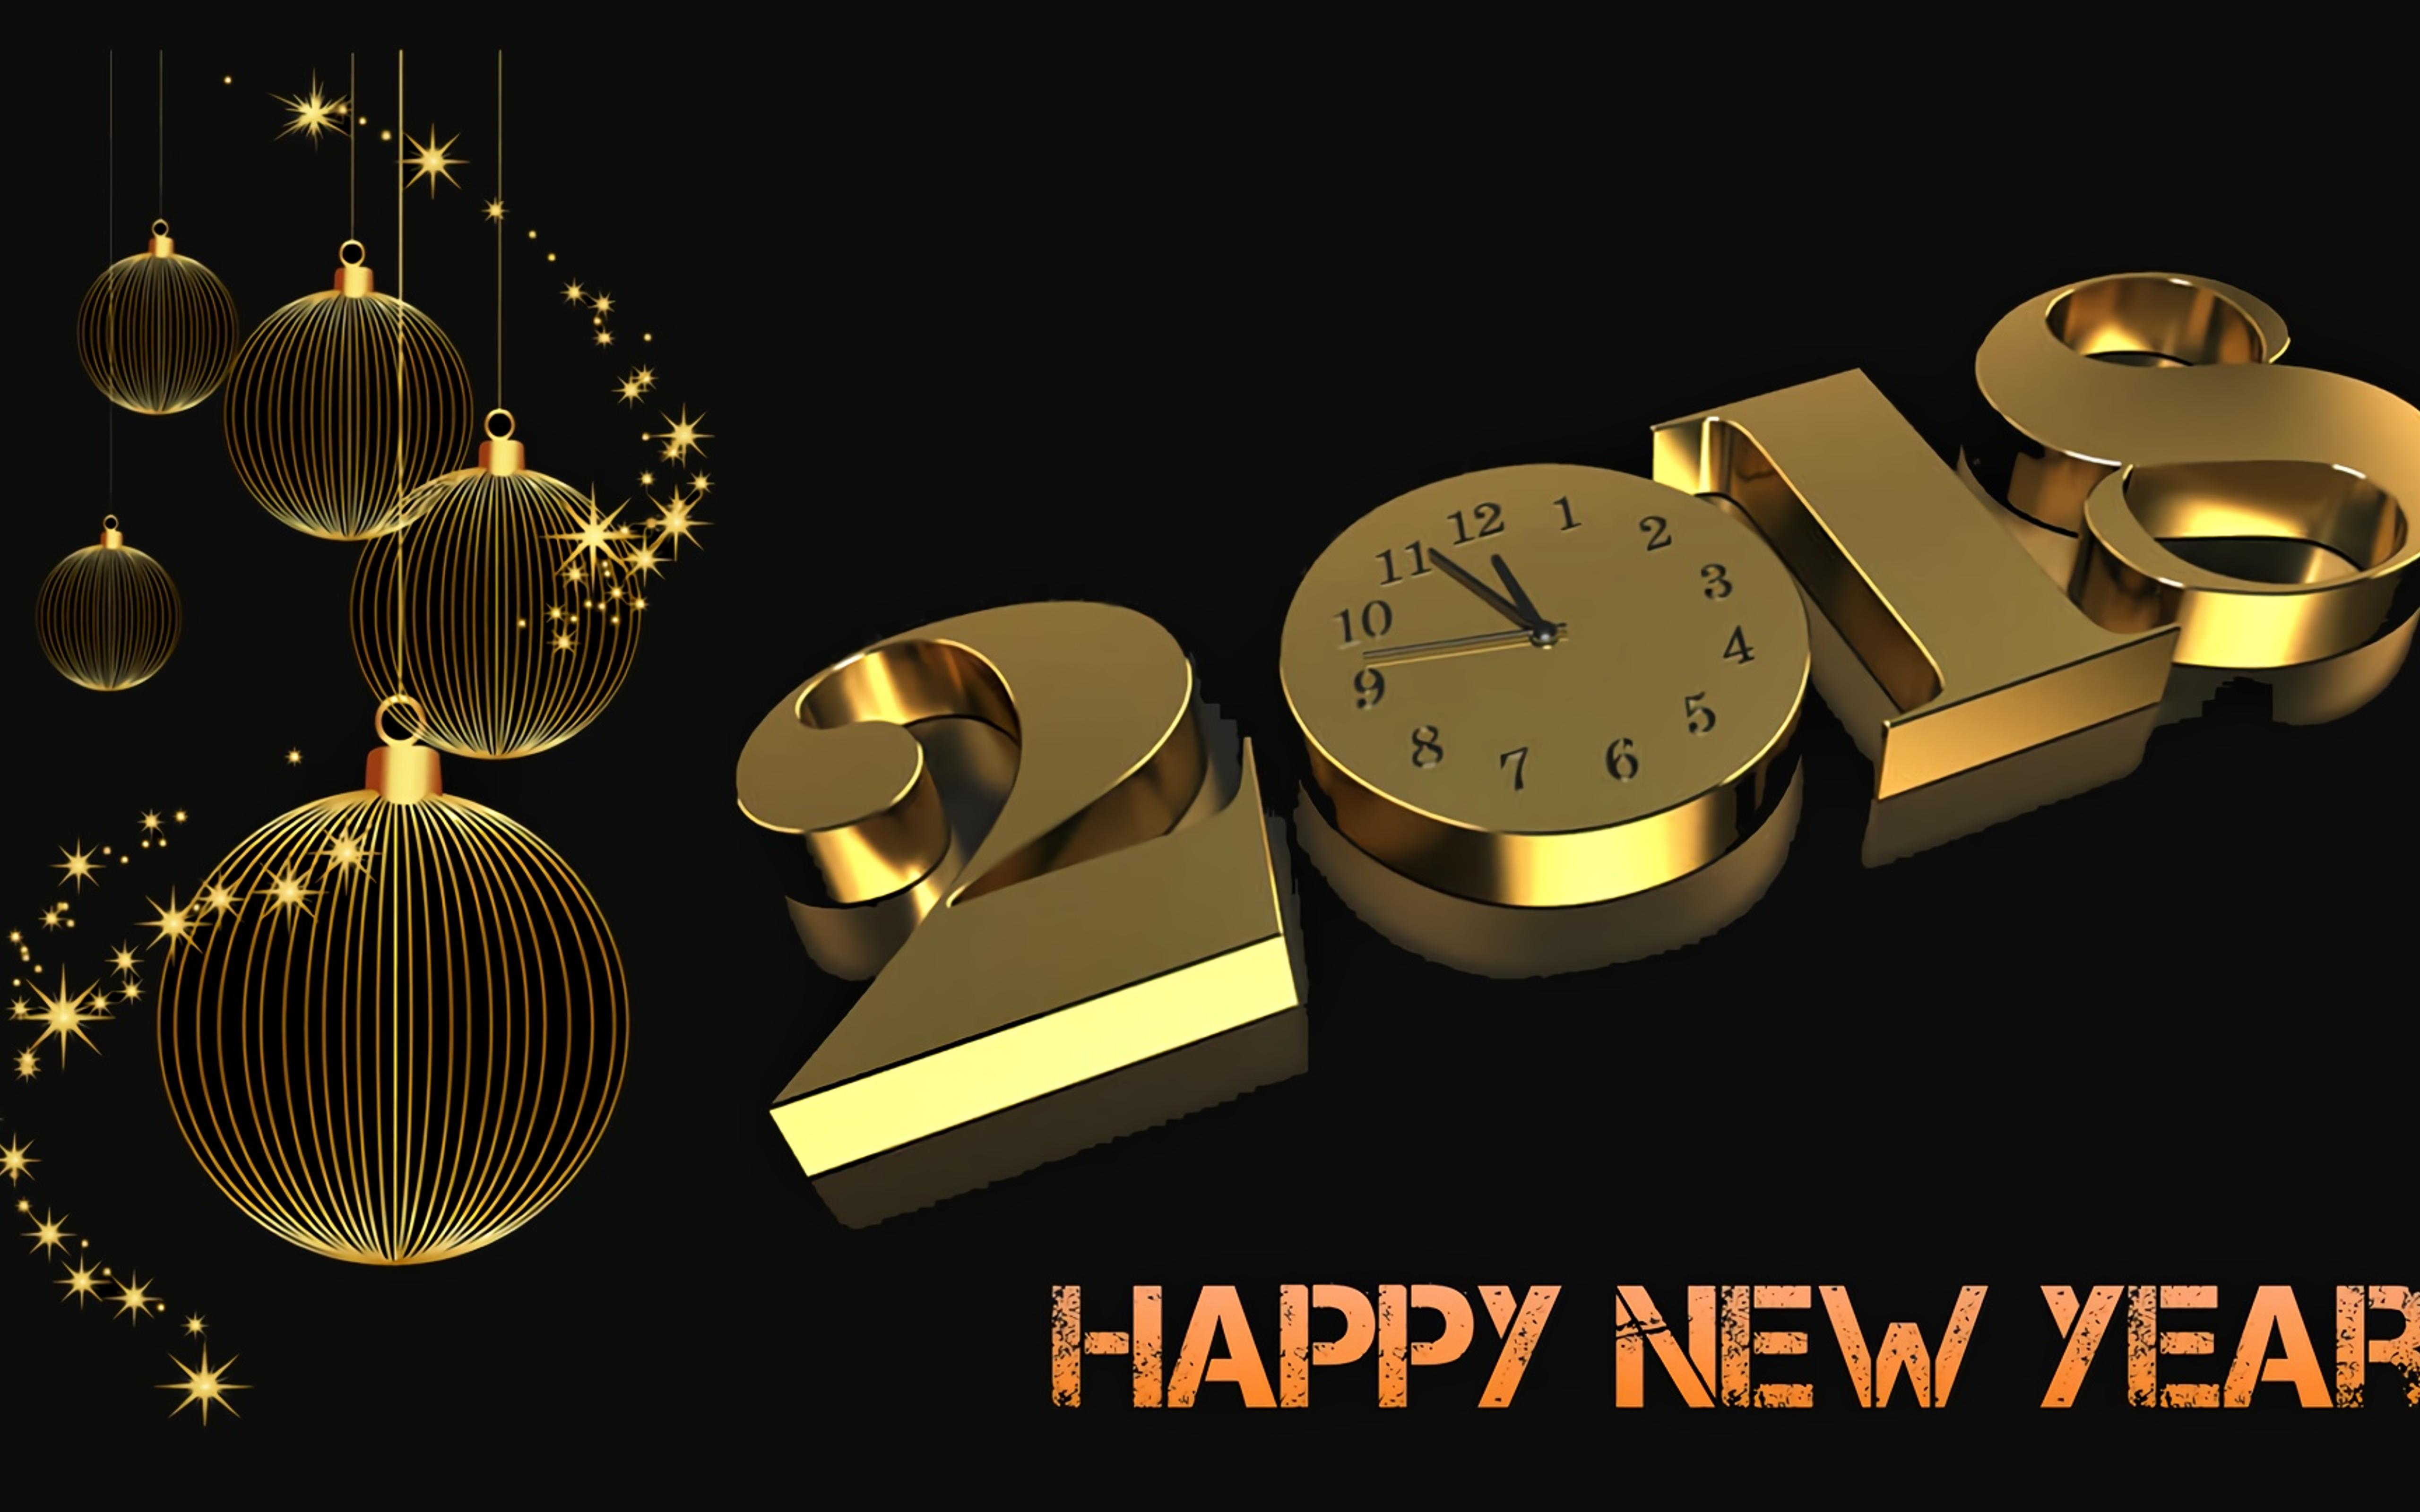 golden time and a happy new year 2018 hd wallpaper wallpaper download 5120x3200